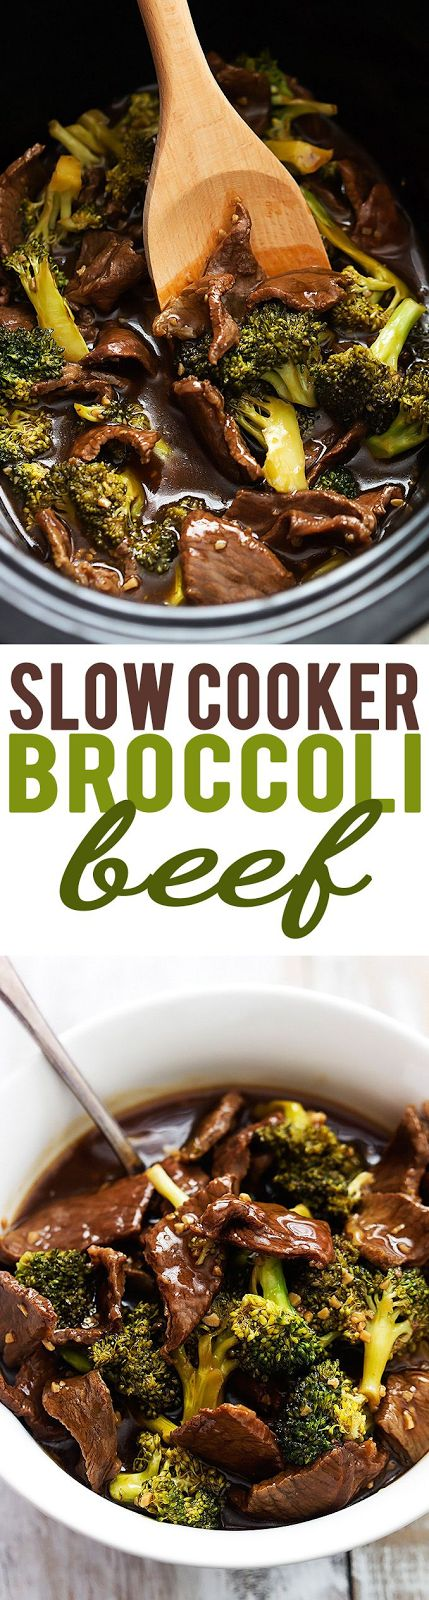 Popular Recipes on Pinterest: SLOW COOKER BROCCOLI BEEF